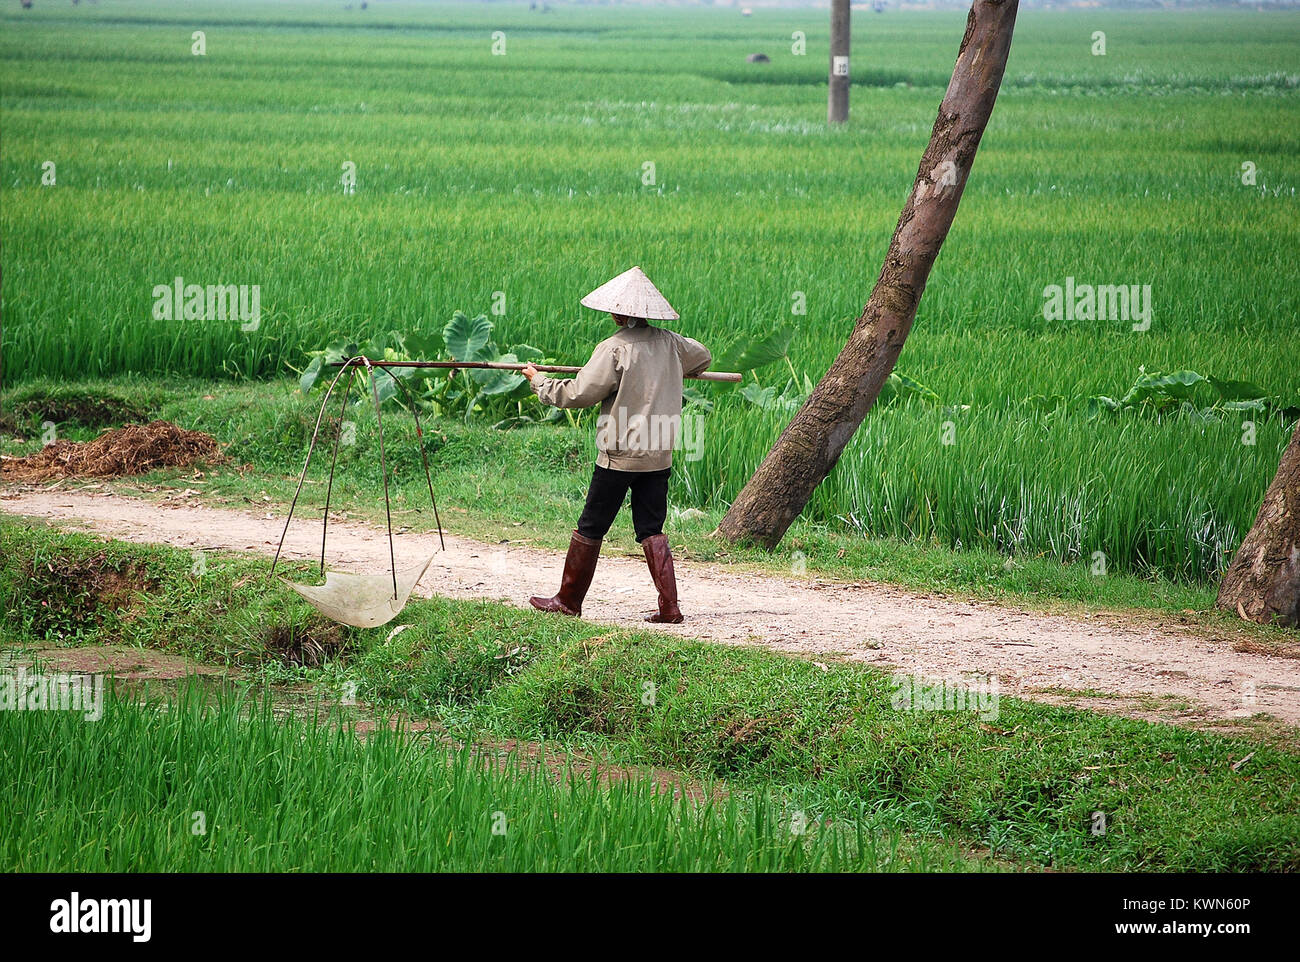 Man hunting frogs in the rice paddy, Vietnam. He wears a typical Vietnamese hat. - Stock Image